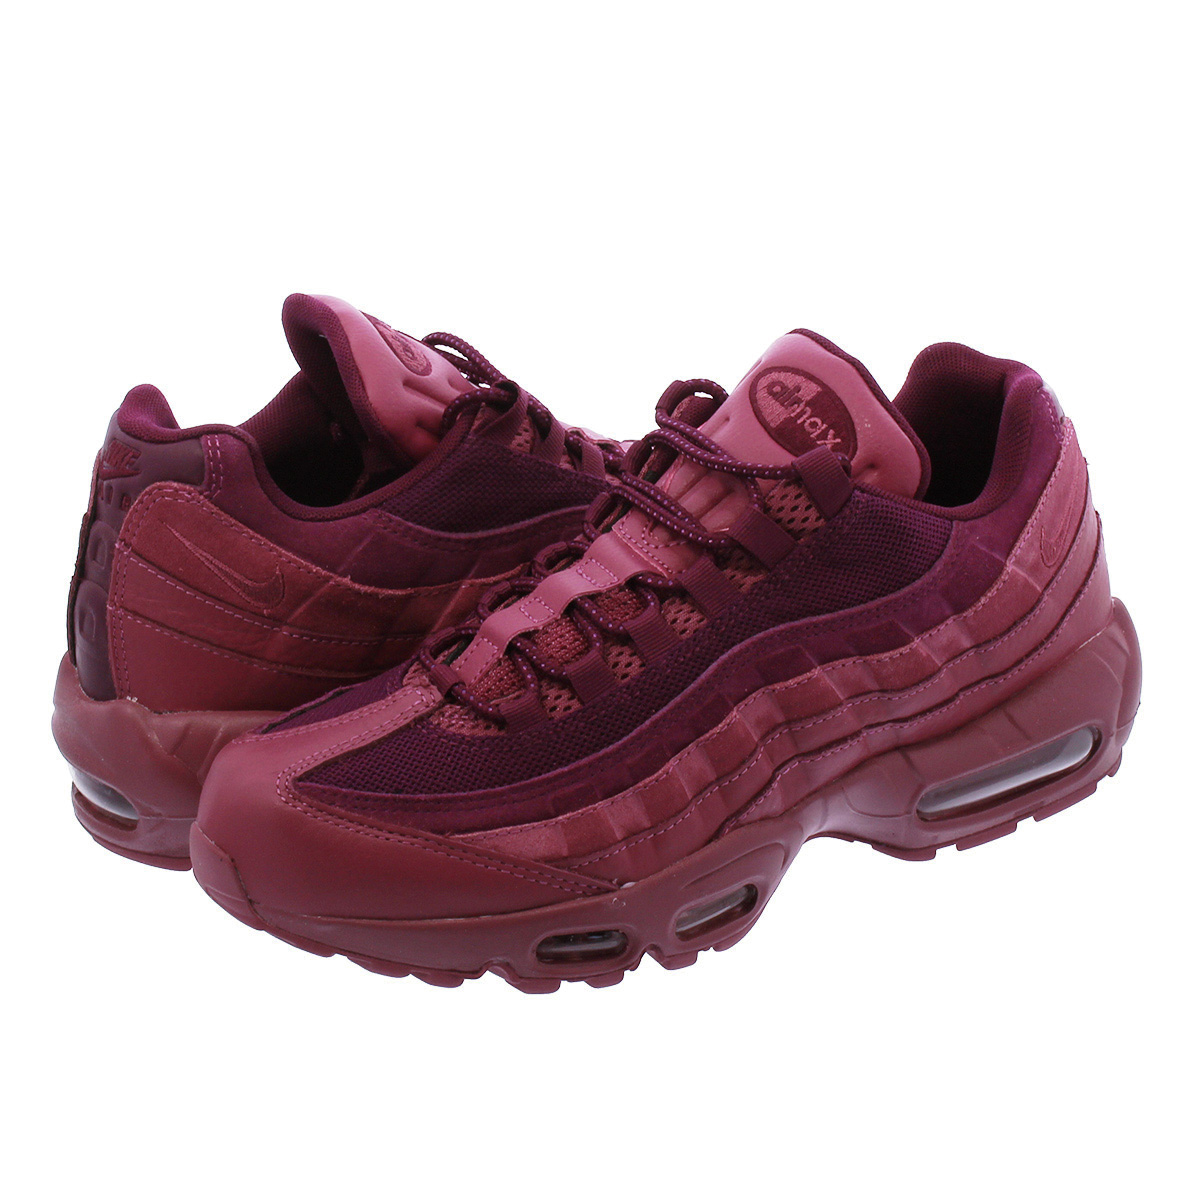 sports shoes d8440 3c86d NIKE AIR MAX 95 PREMIUM Kie Ney AMAX 95 premium VINTAGE WINEBORDEAUX